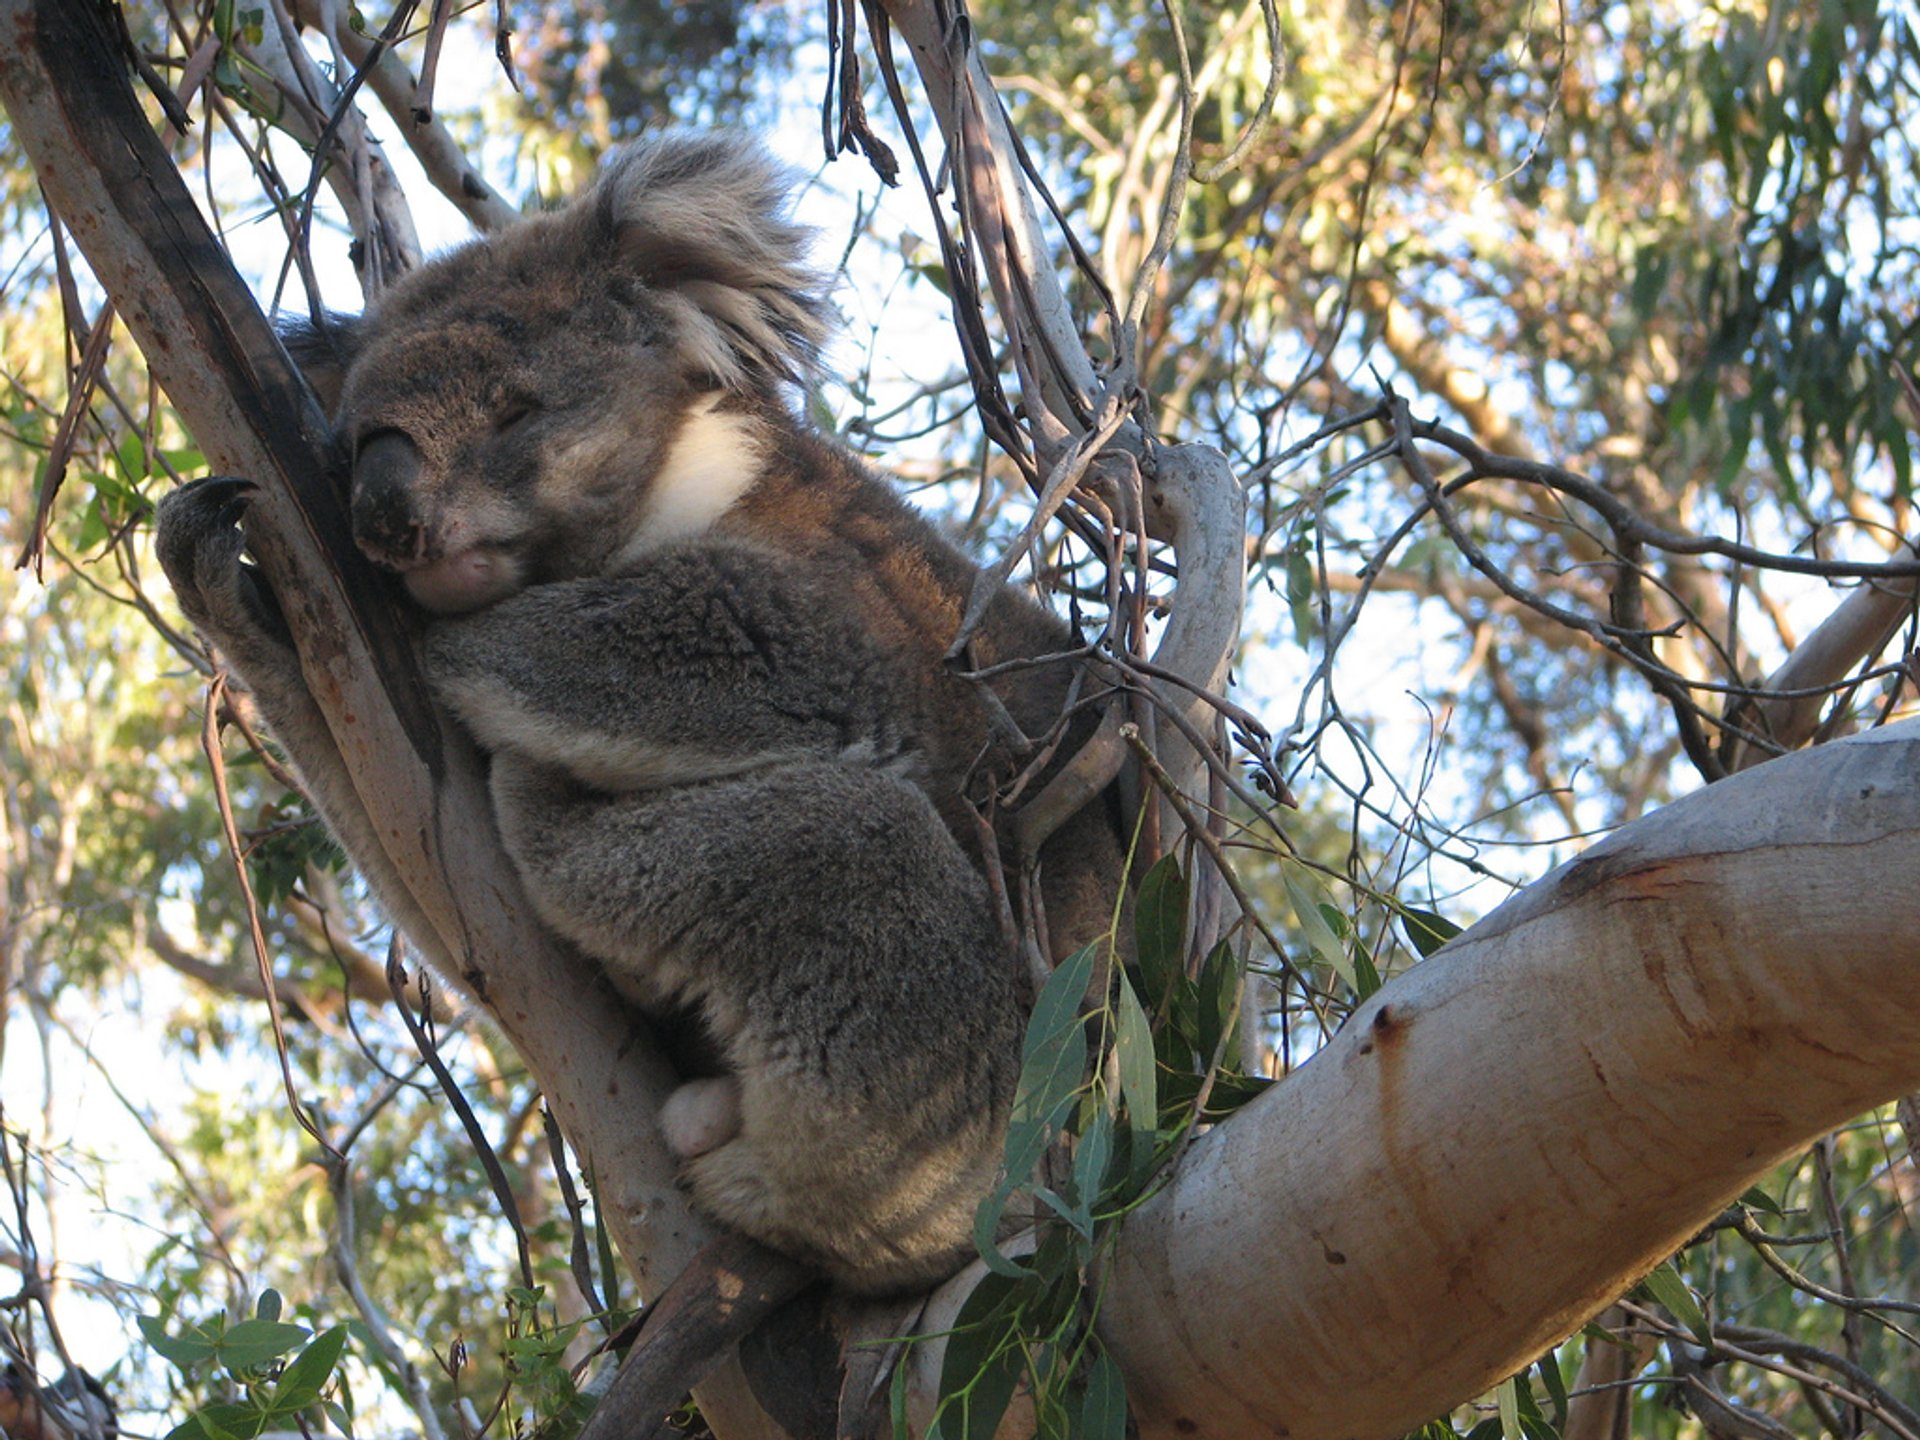 Best time to see Koalas in Victoria 2019